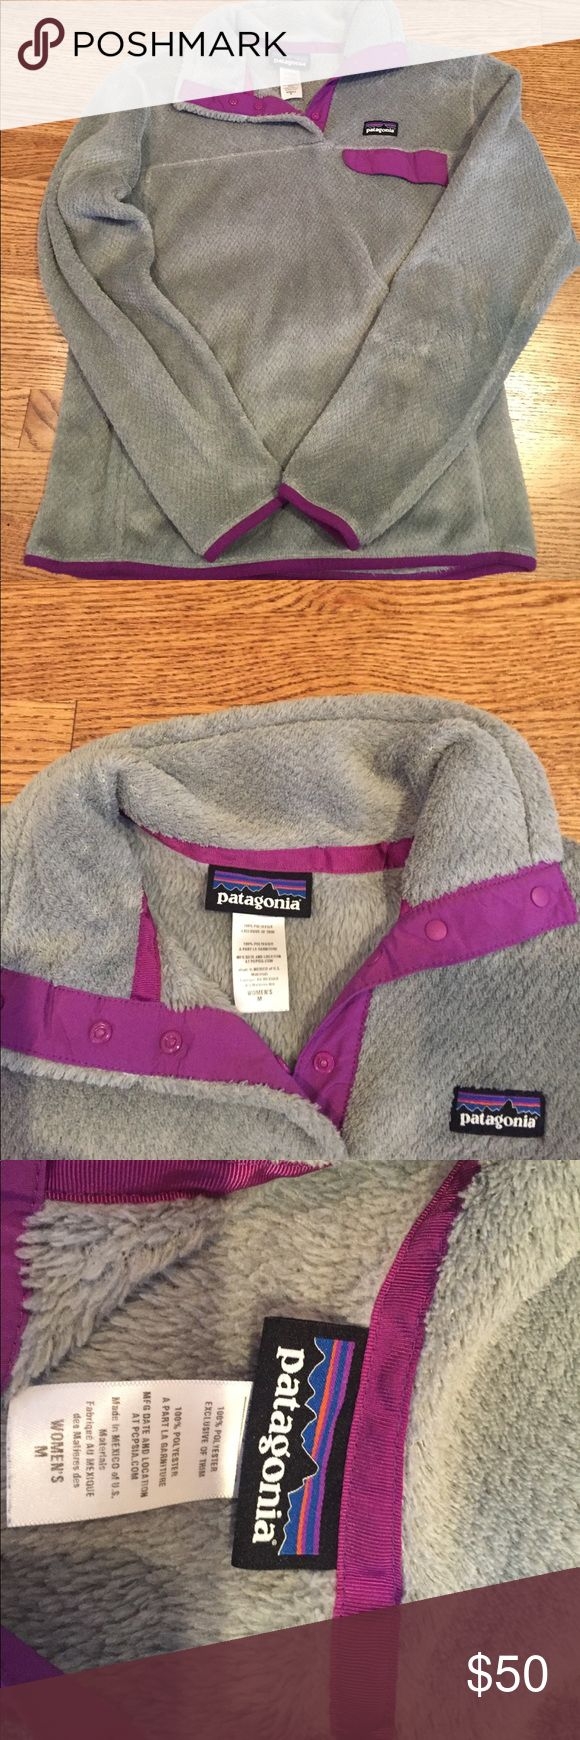 Women's Patagonia Pullover in Gray Barely worn women's Patagonia Snap T Pullover in gray with Purple Accents. So soft and comfortable and this one has hardly been worn! Patagonia Tops Sweatshirts & Hoodies